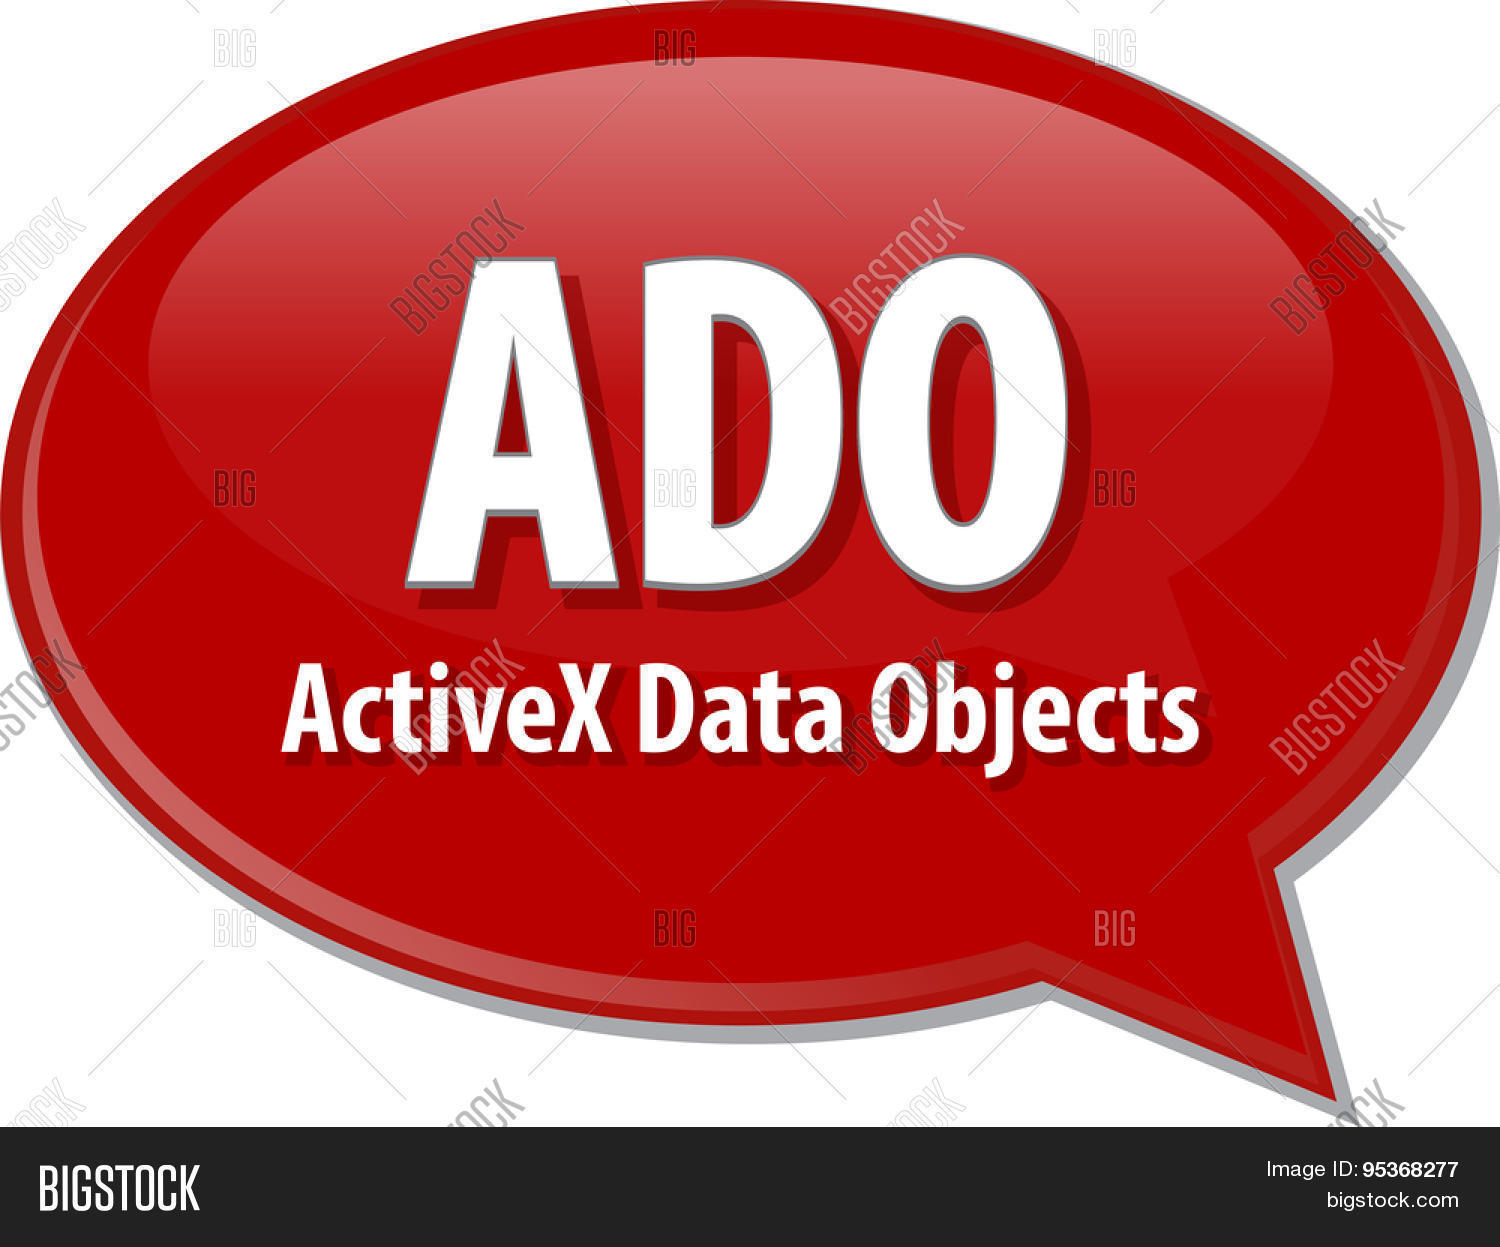 Speech Bubble Illustration Of Information Technology Acronym Abbreviation Term Definition Ado Active 95368277 Image Stock Photo